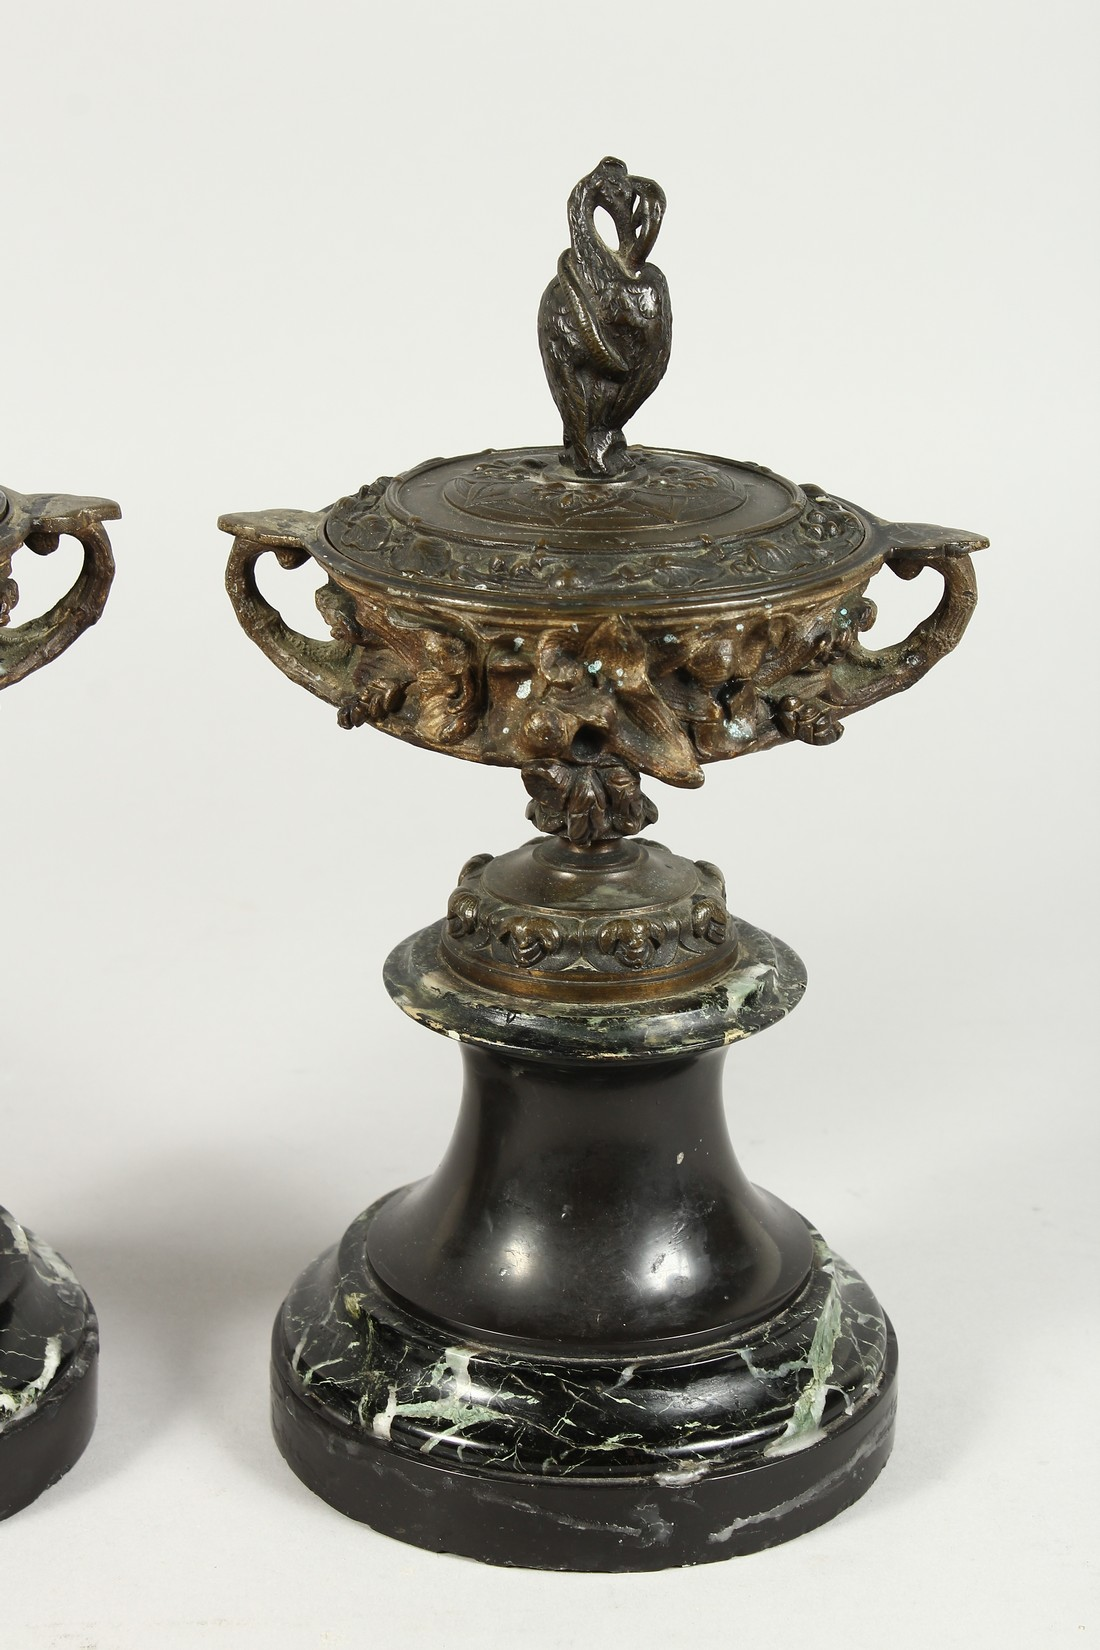 A PAIR OF BRONZE TWO HANDLED URNS AND COVERS on circular marble bases. 10ins high. - Image 3 of 6